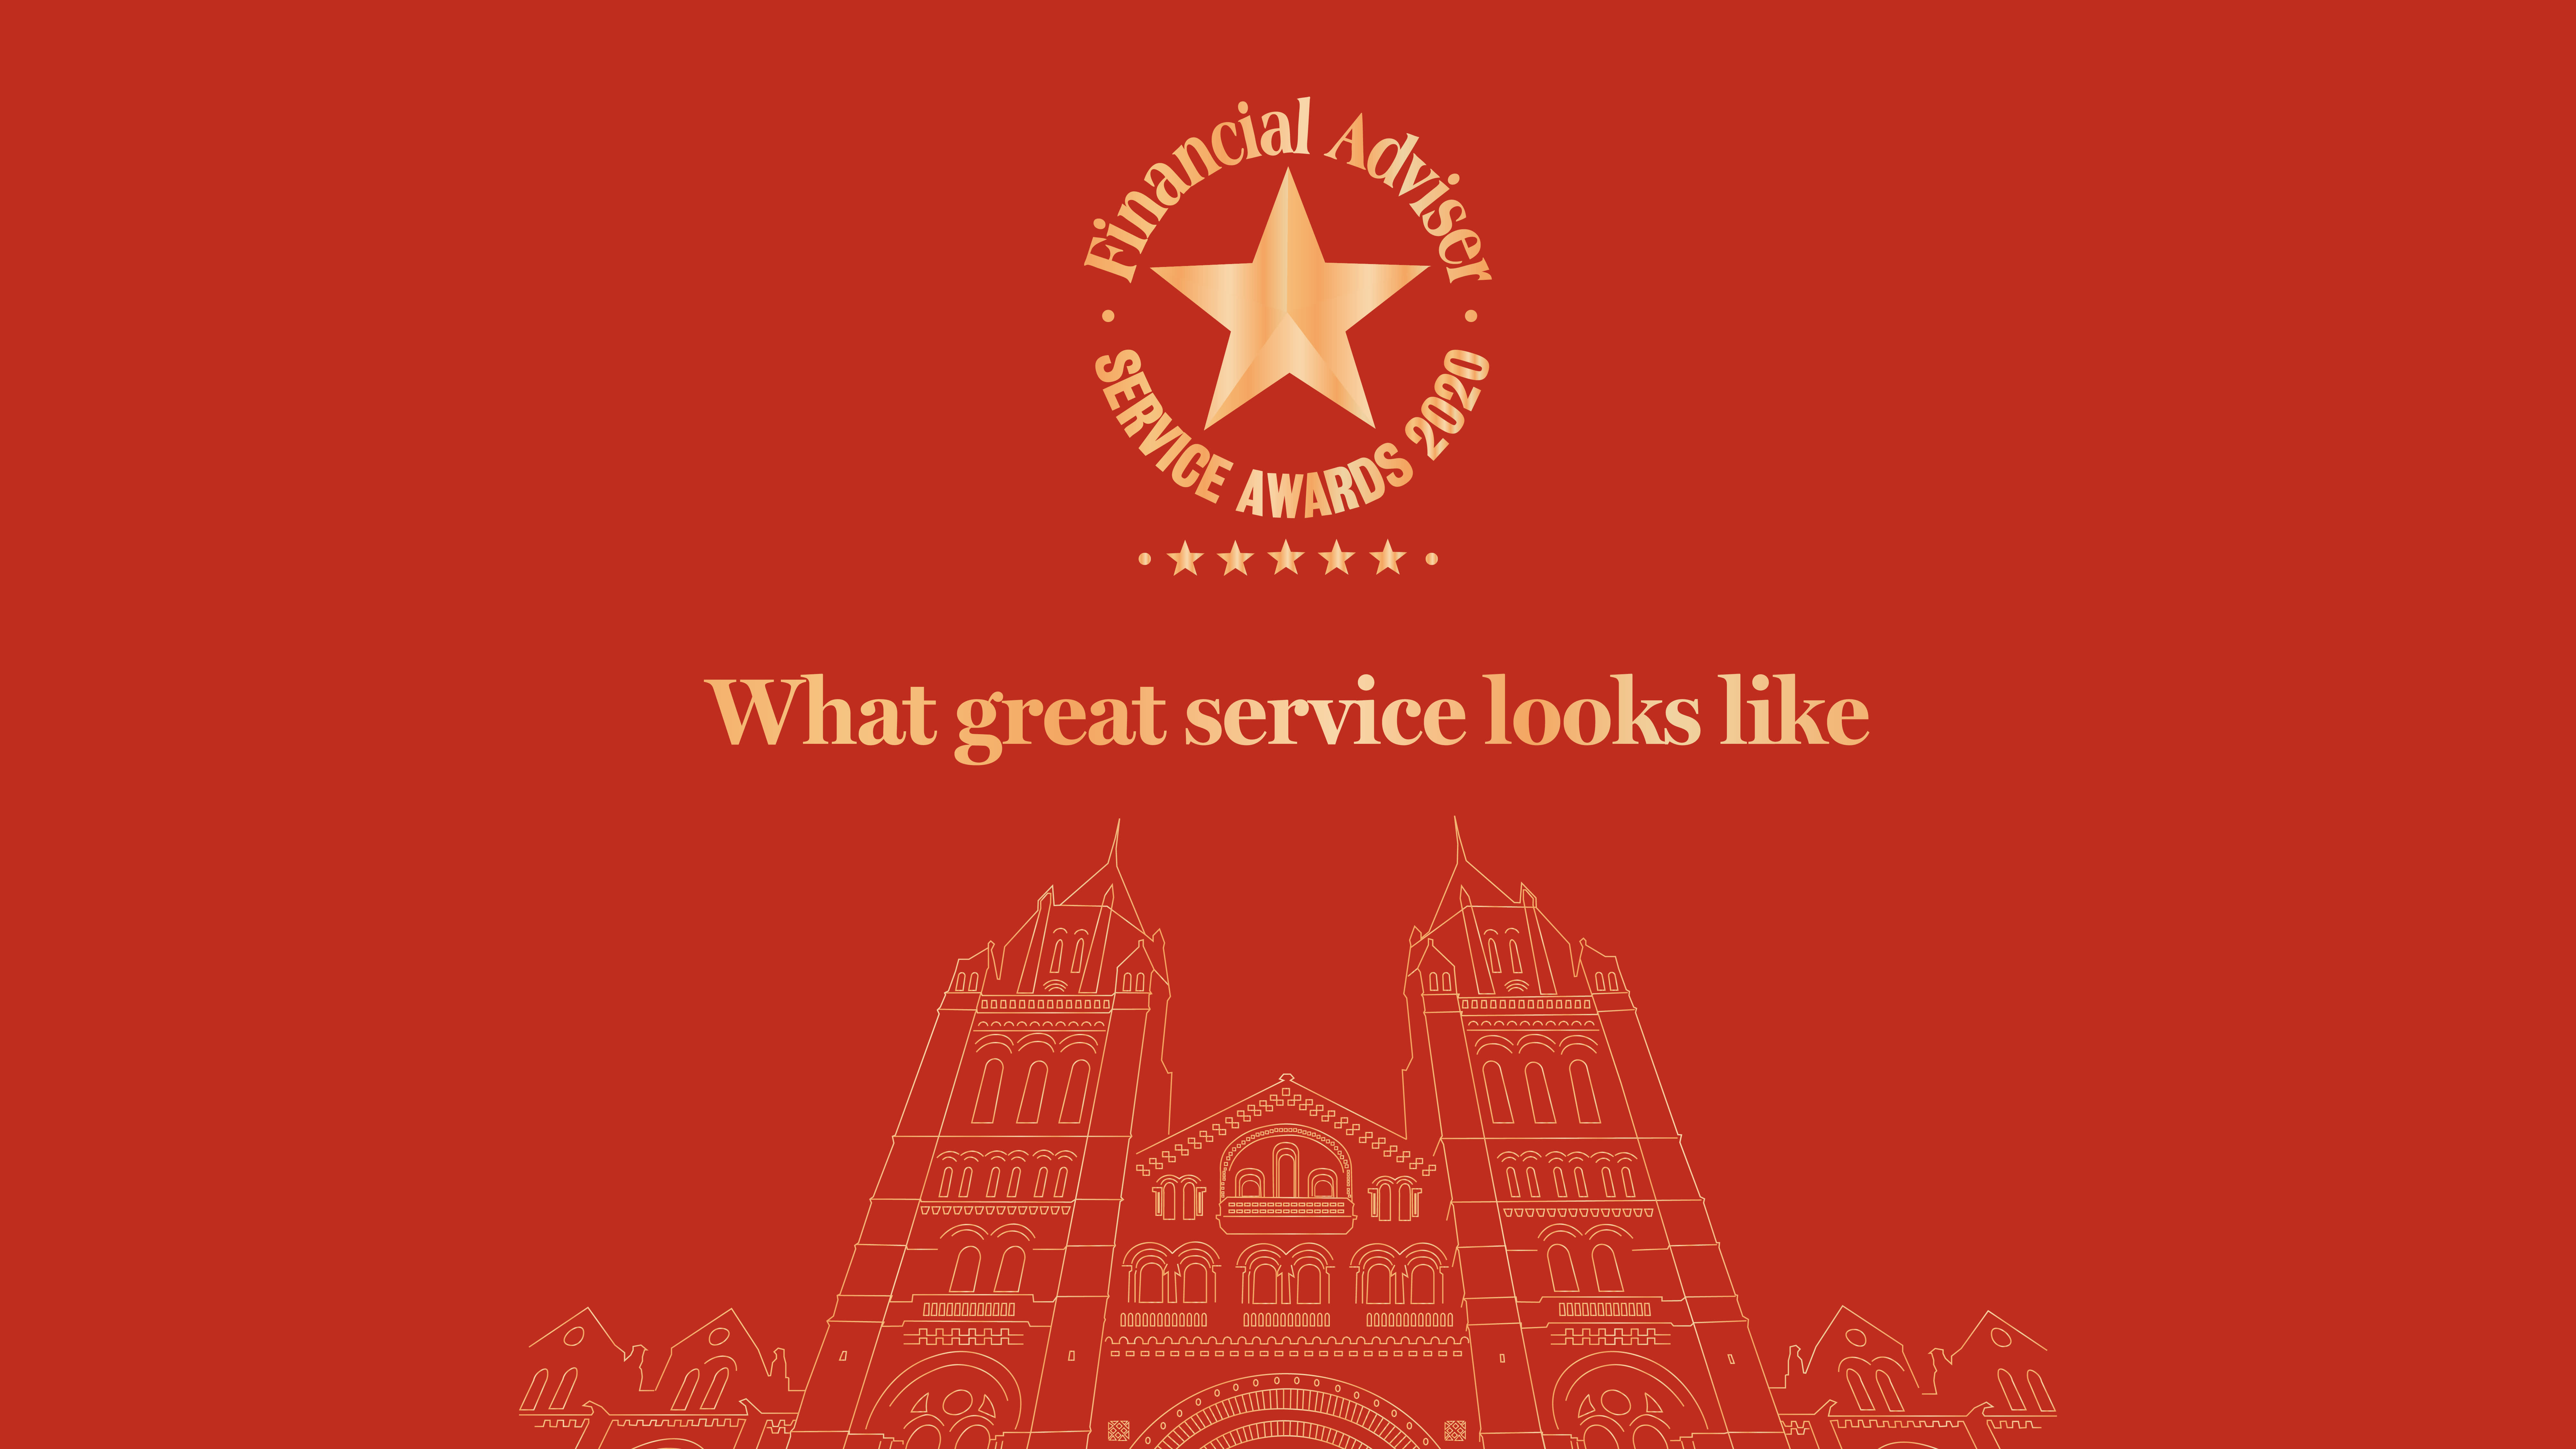 Financial Adviser Service Awards: Life & Pensions